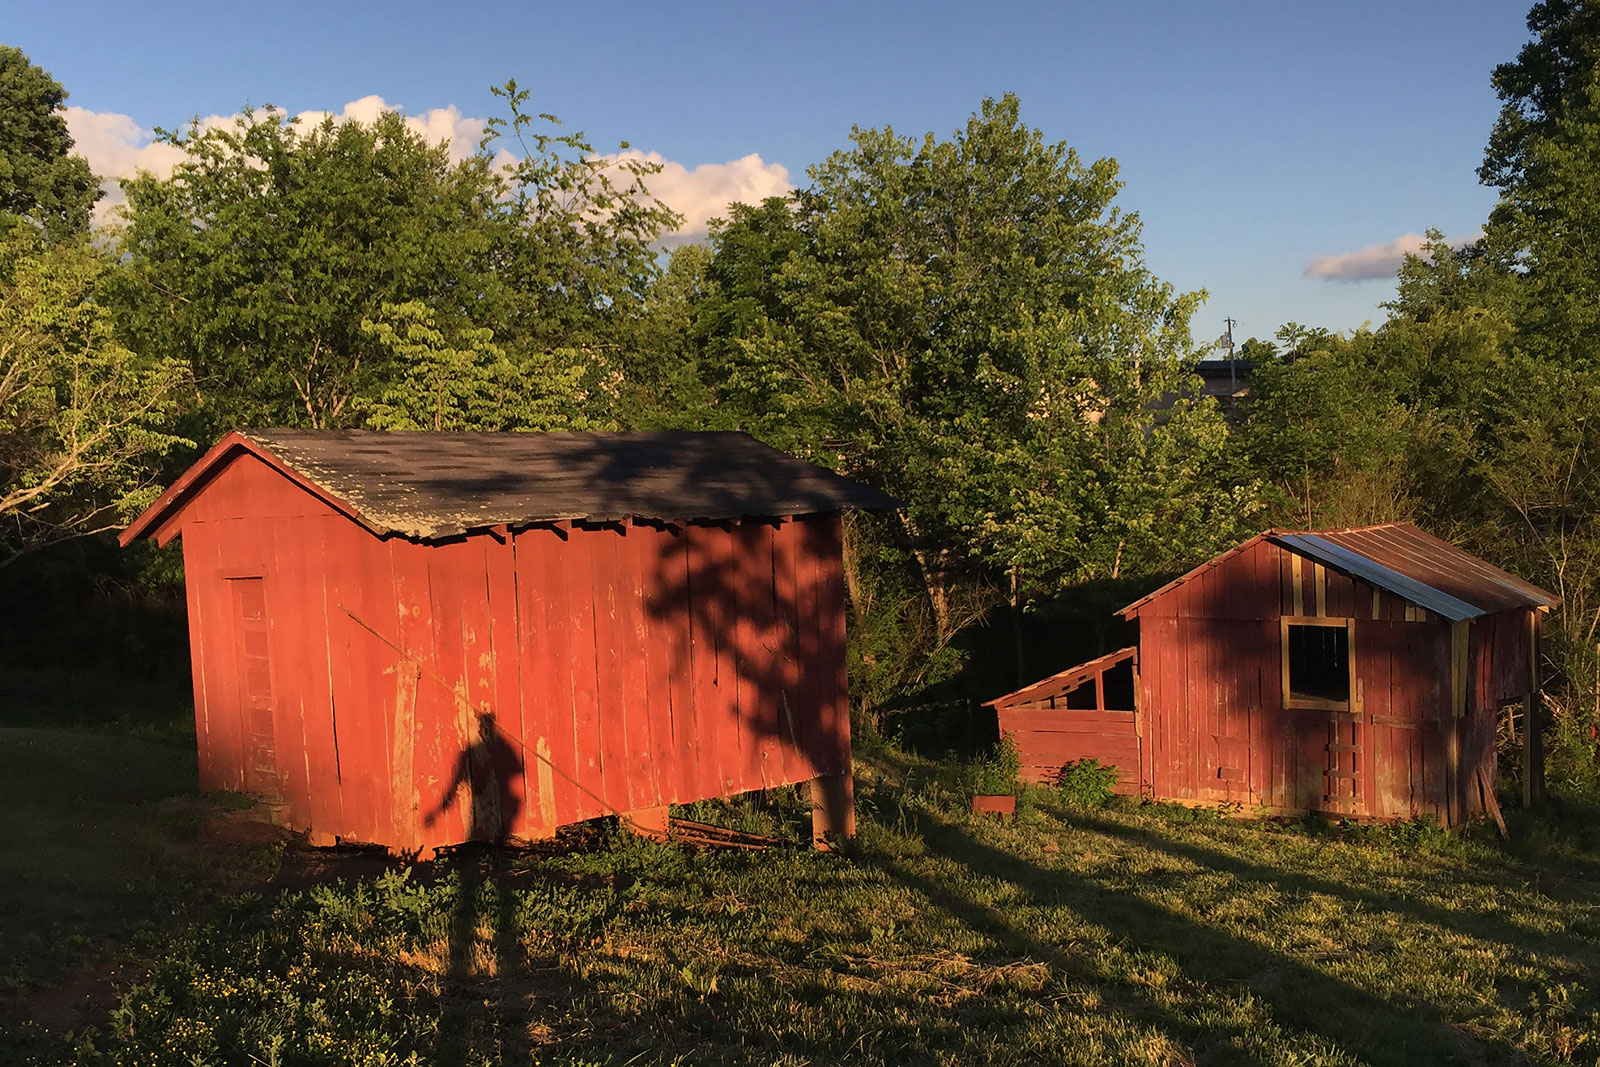 Weeds, stray cats and shadows visit my grandparent's barn more often than people. At one point four horses lived in these stalls and my pap-paw named them Ted, Molly, Rex and Jim Bob.  Molly was spotted. Ted was tan. Rex looked like Jim Bob, brown with a white stripe on his nose.